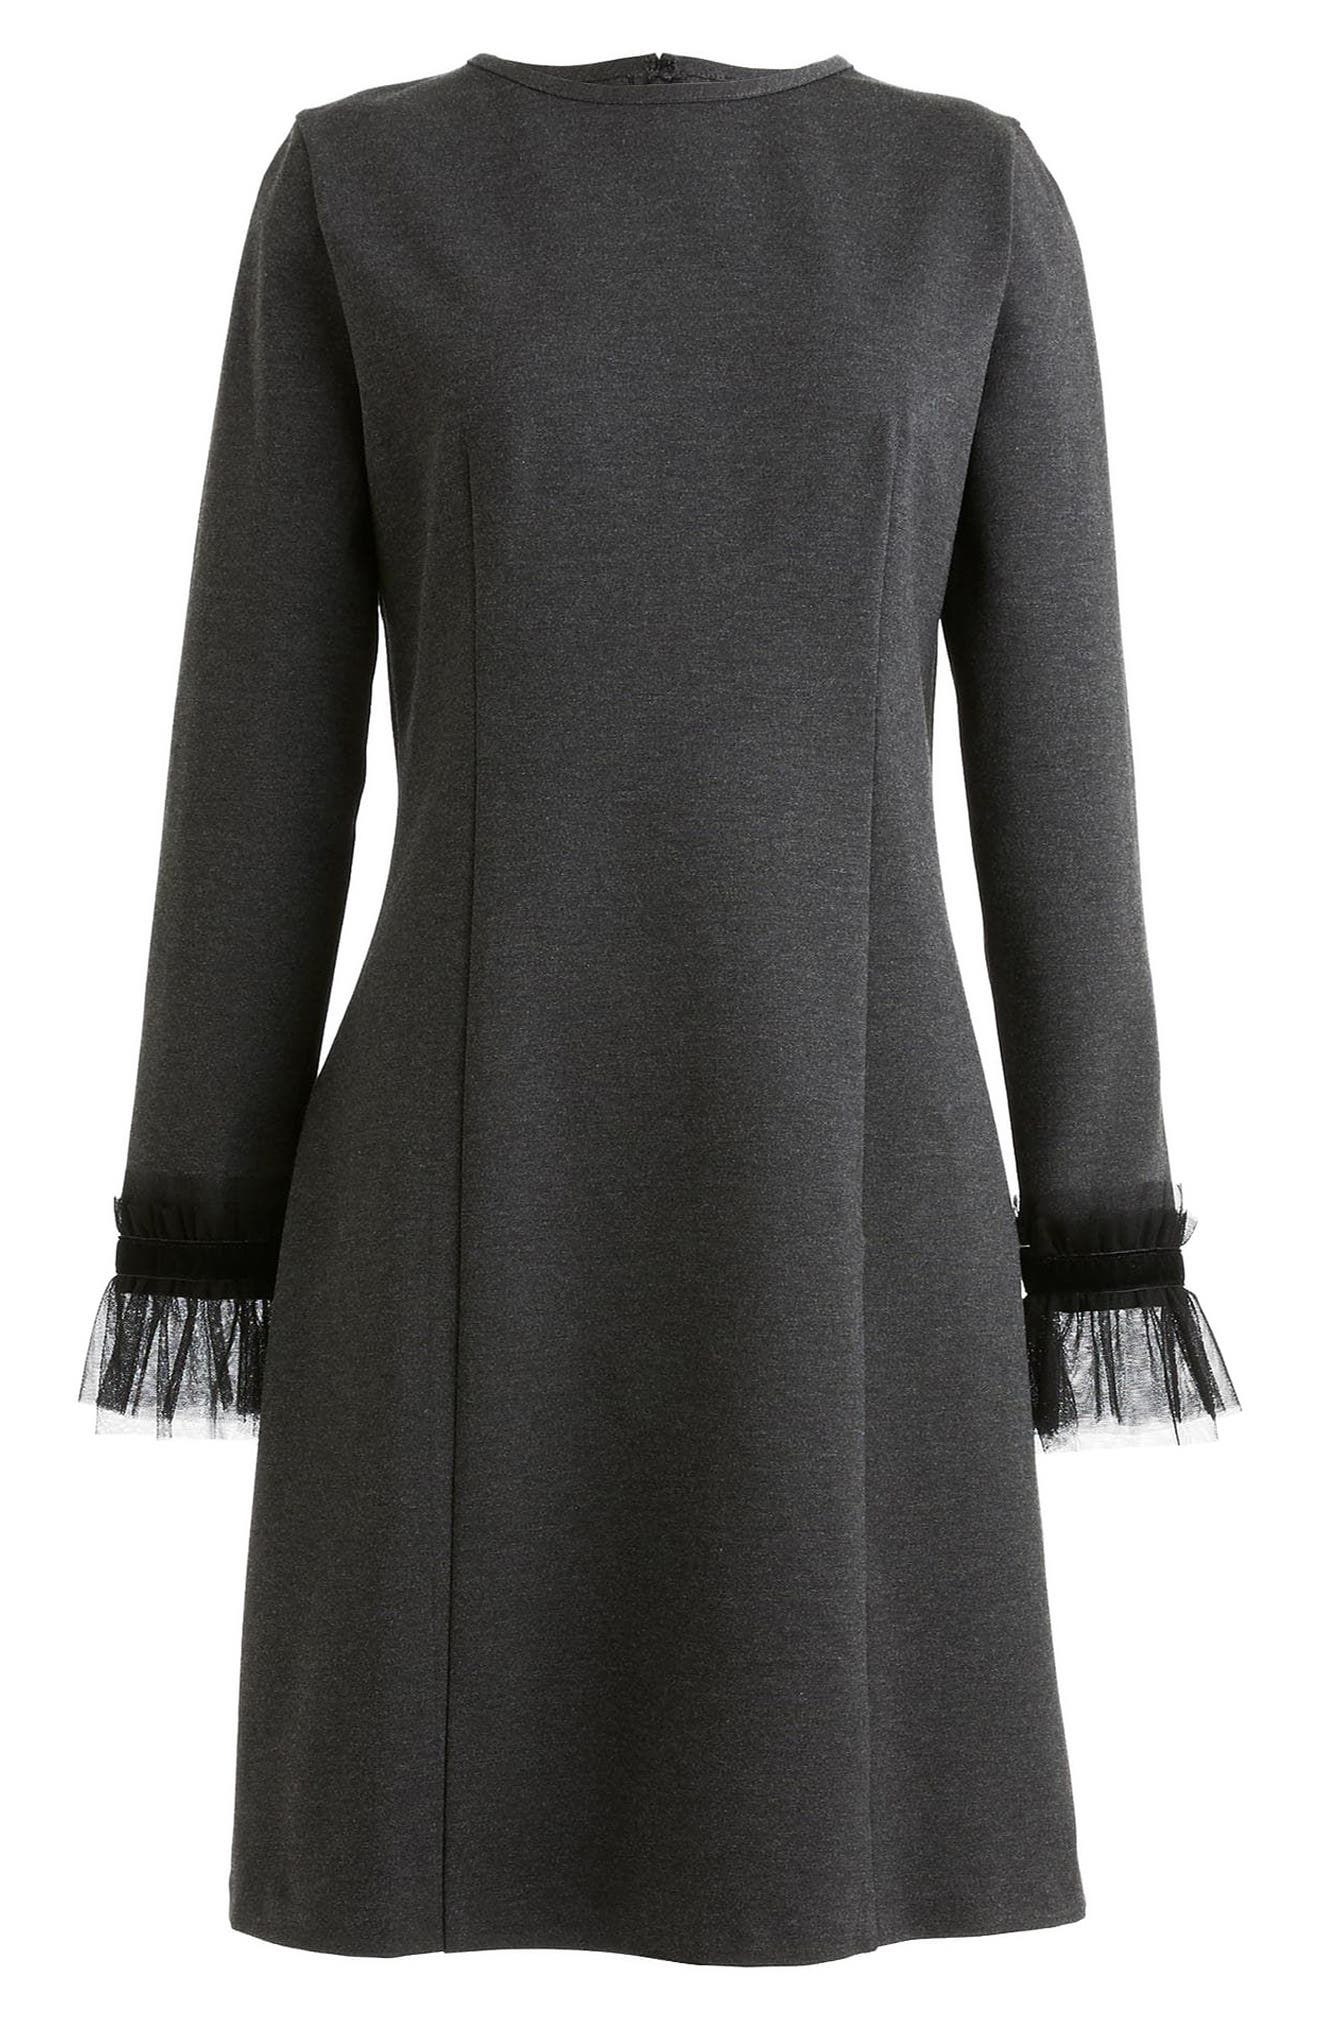 Alternate Image 3  - J.Crew Tulle Trim Long Sleeve Sheath Dress